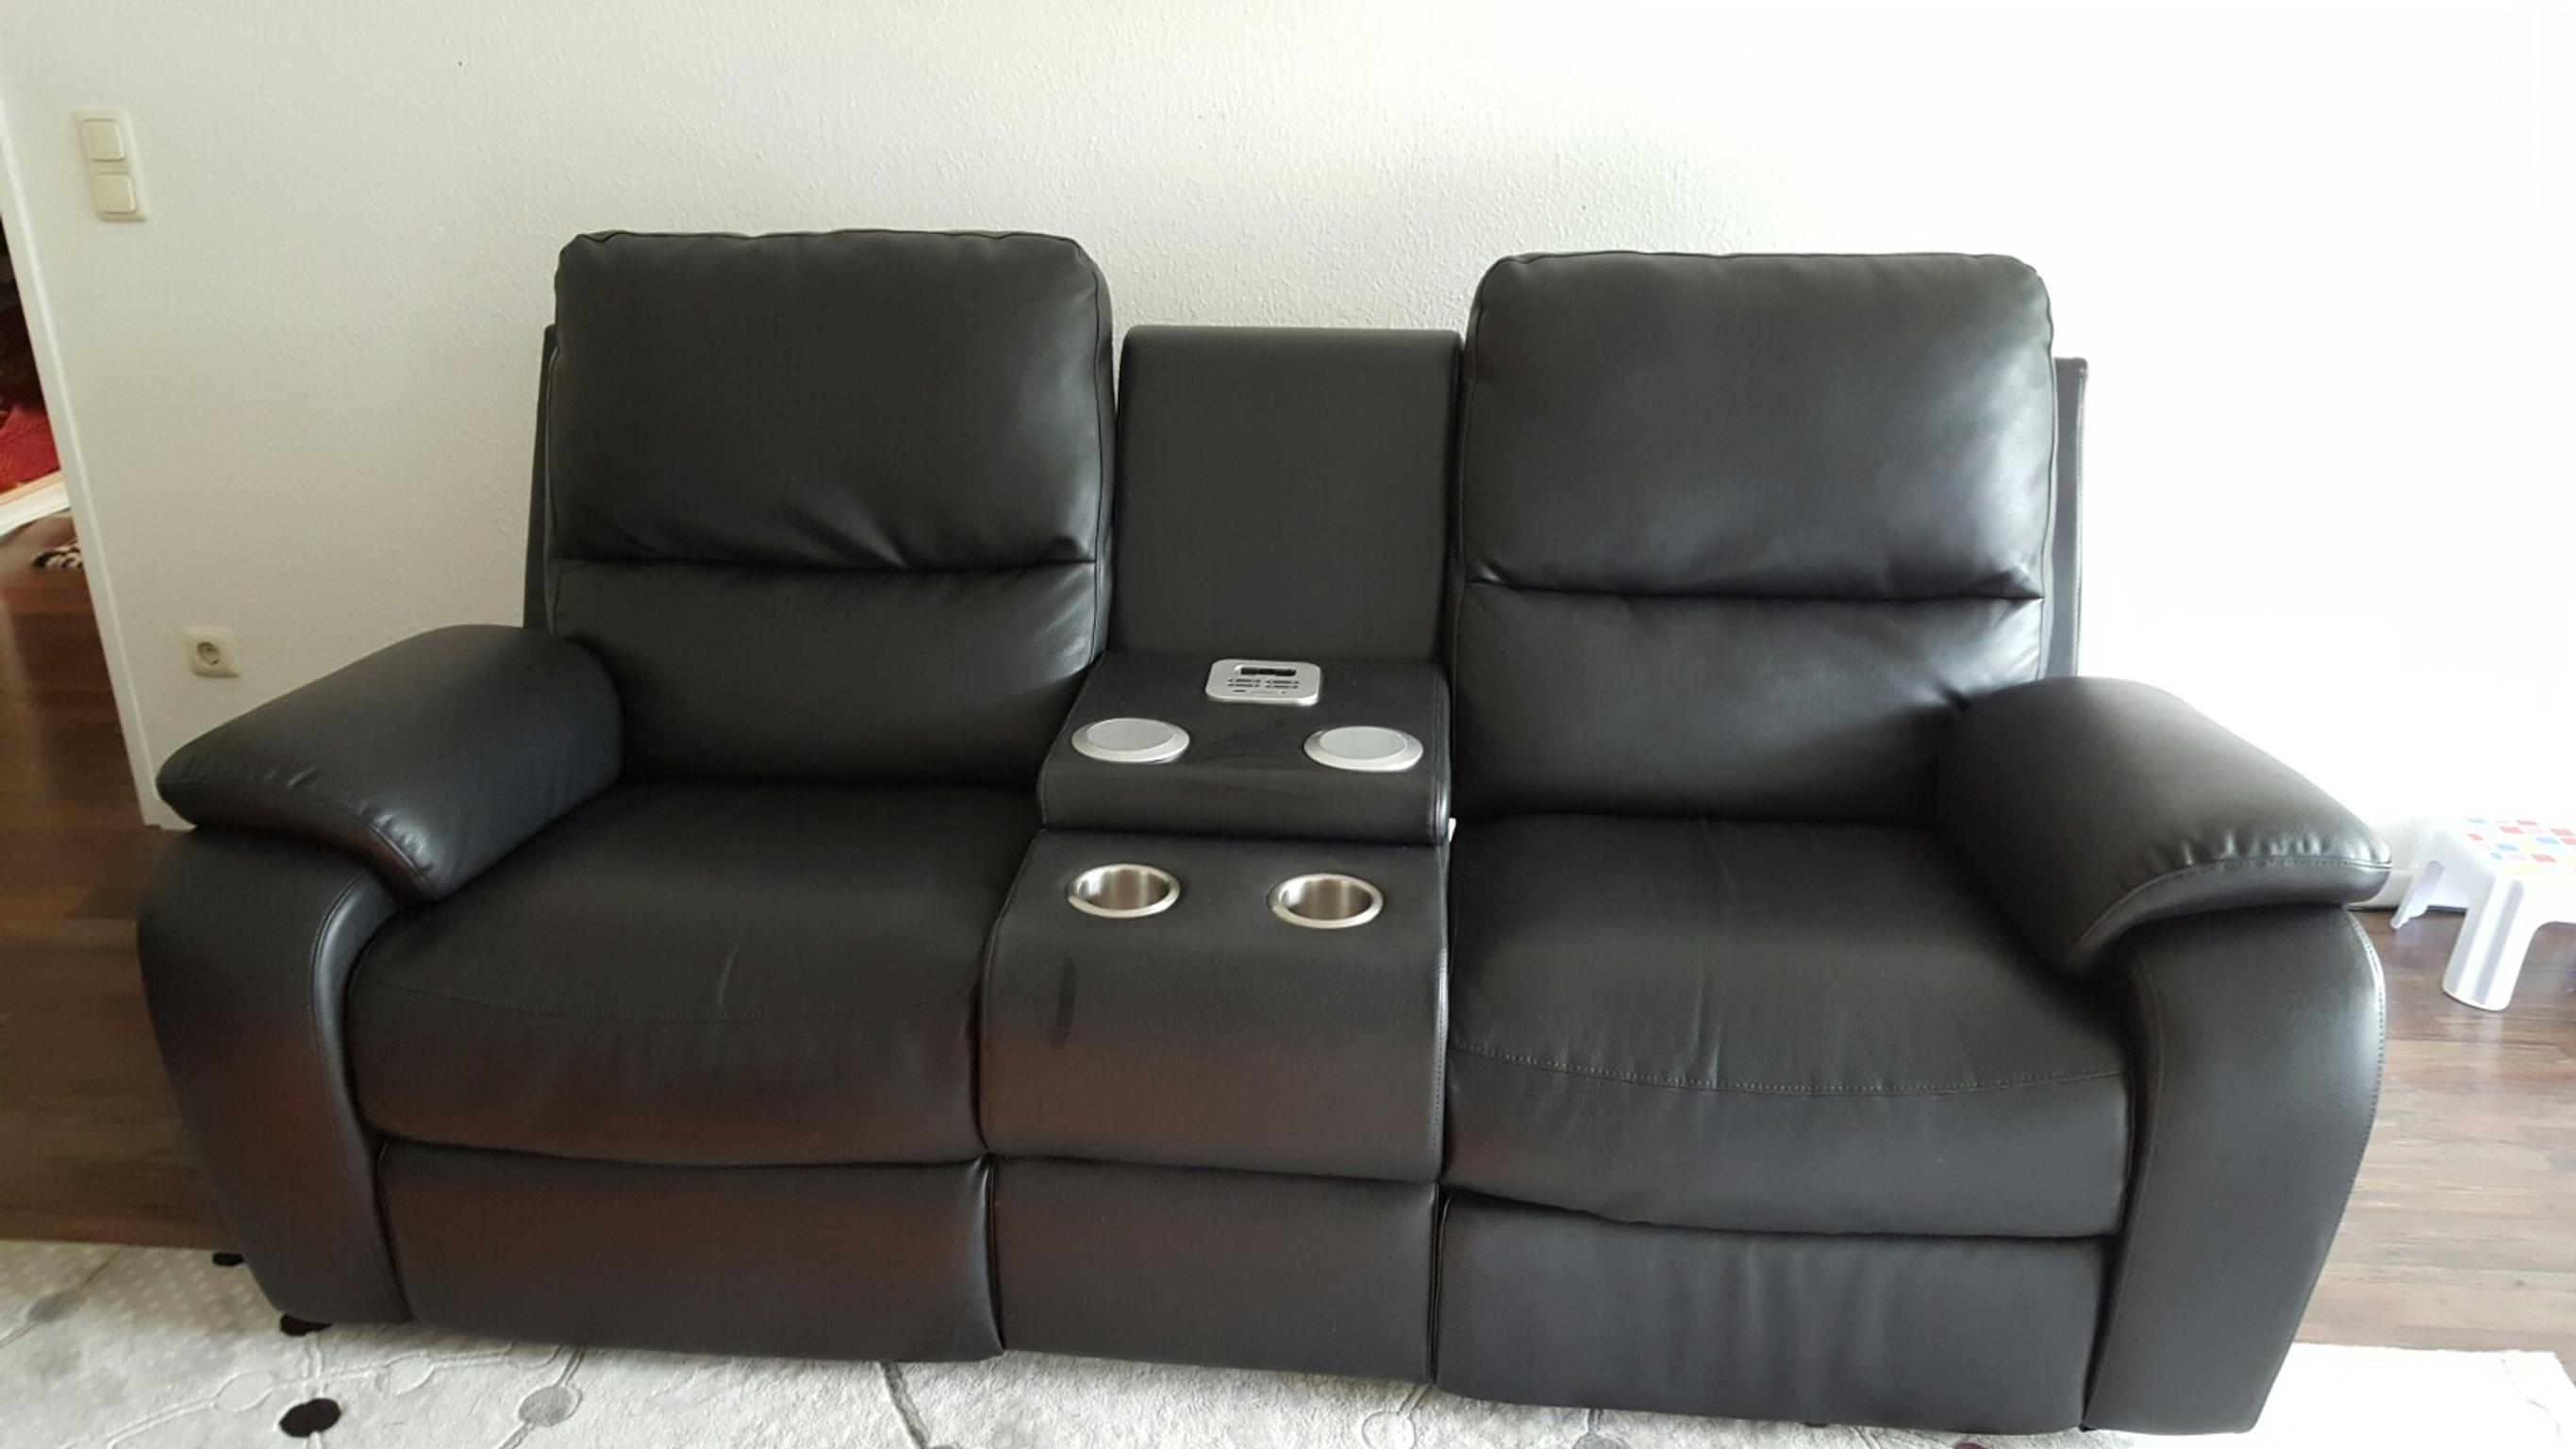 2 sitzer city sofa mit relaxfunktion in 44269 dortmund for for sale shpock